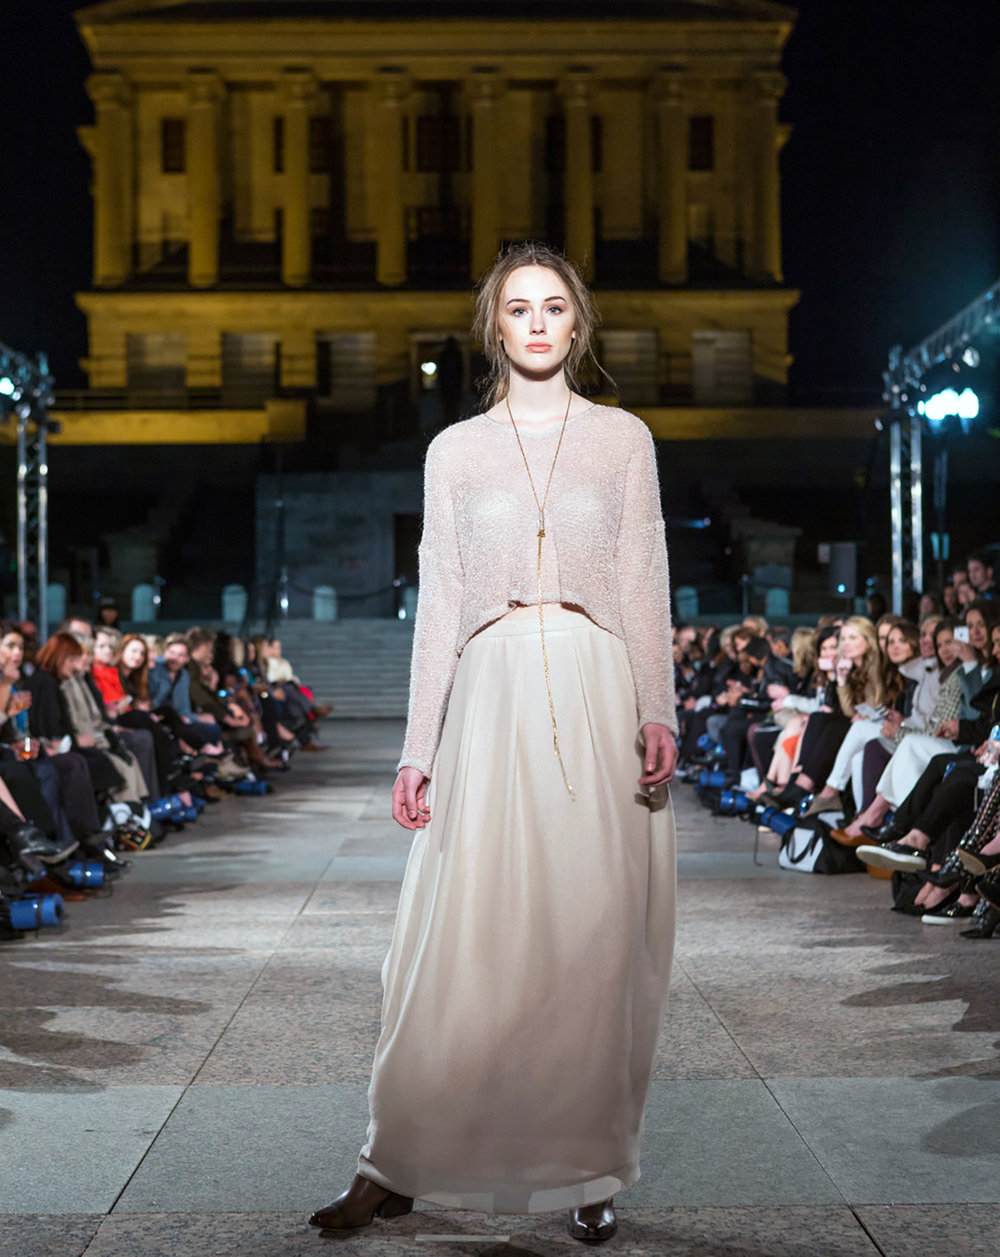 Lagi Nadeau  (Image courtesy of Nashville Fashion Week)